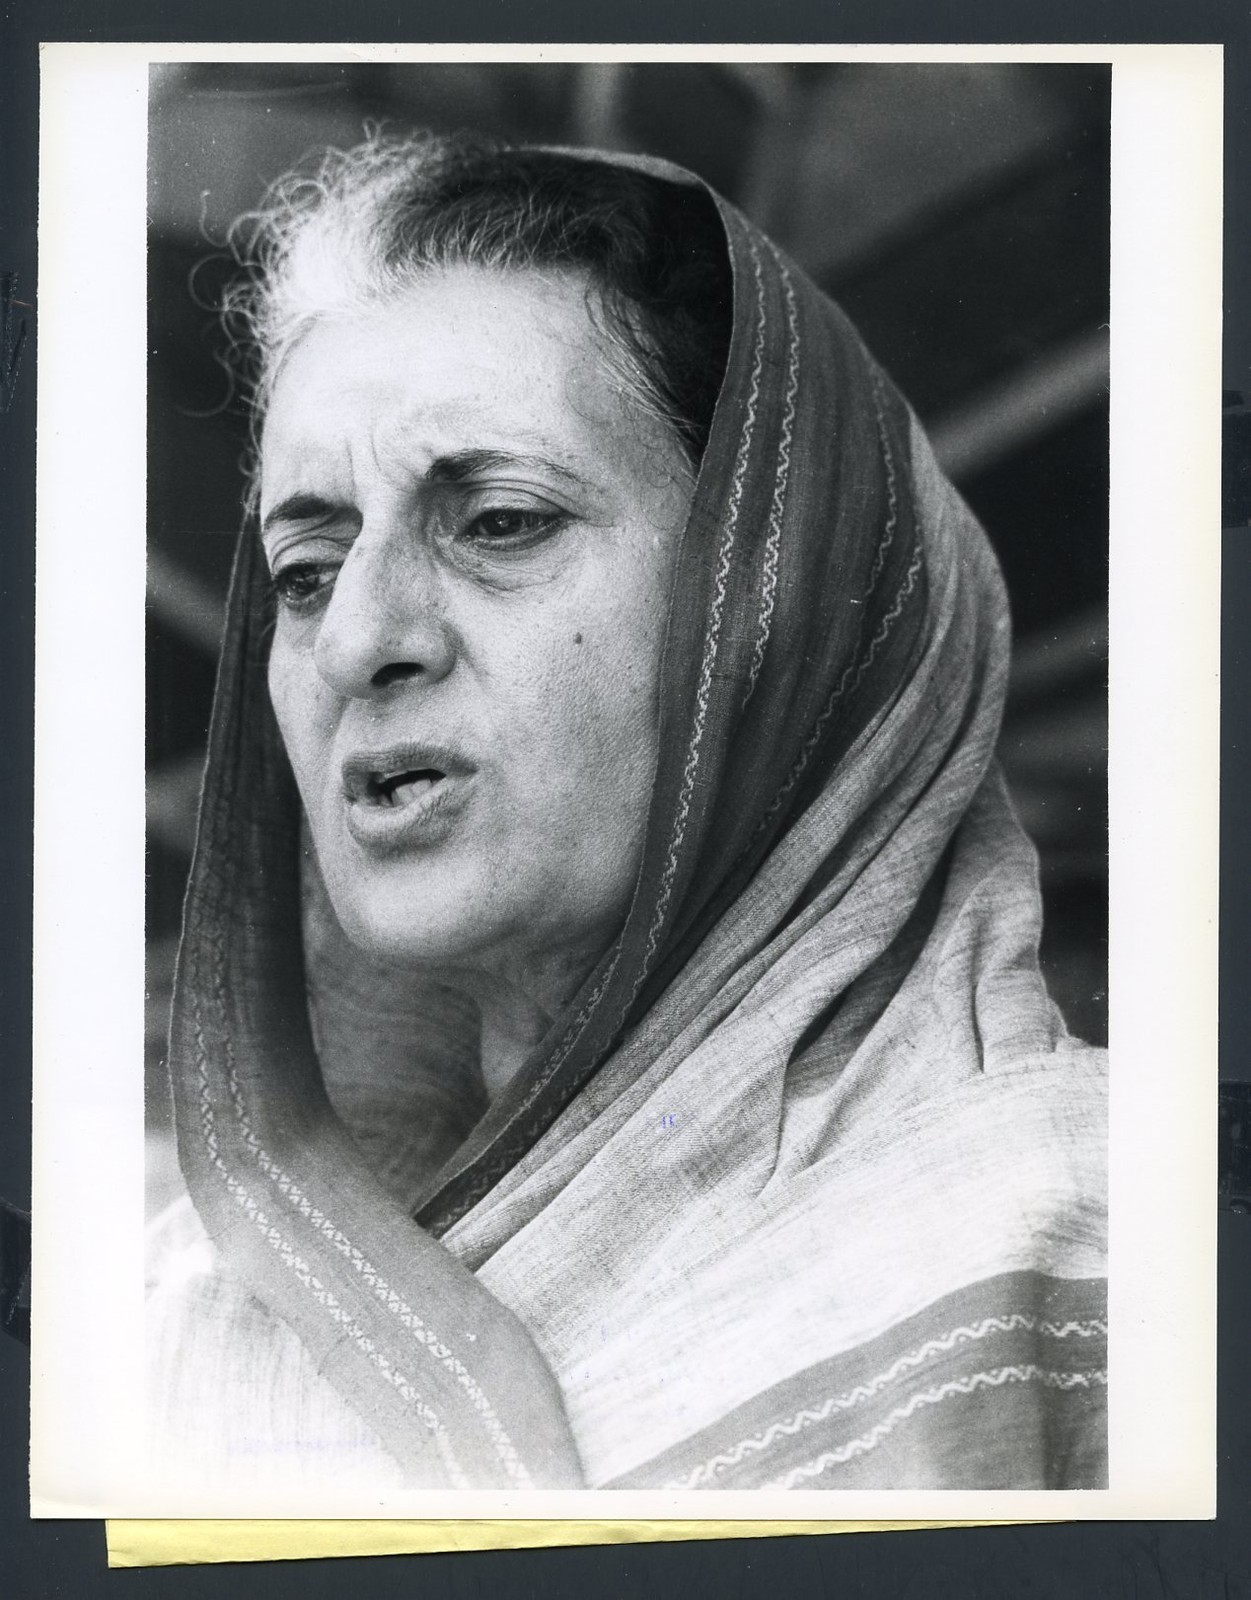 biography of indira ghandi essay Indira gandhi defining women would be the most arduous task for anyone in this world and for men its next to impossible sometimes, women.